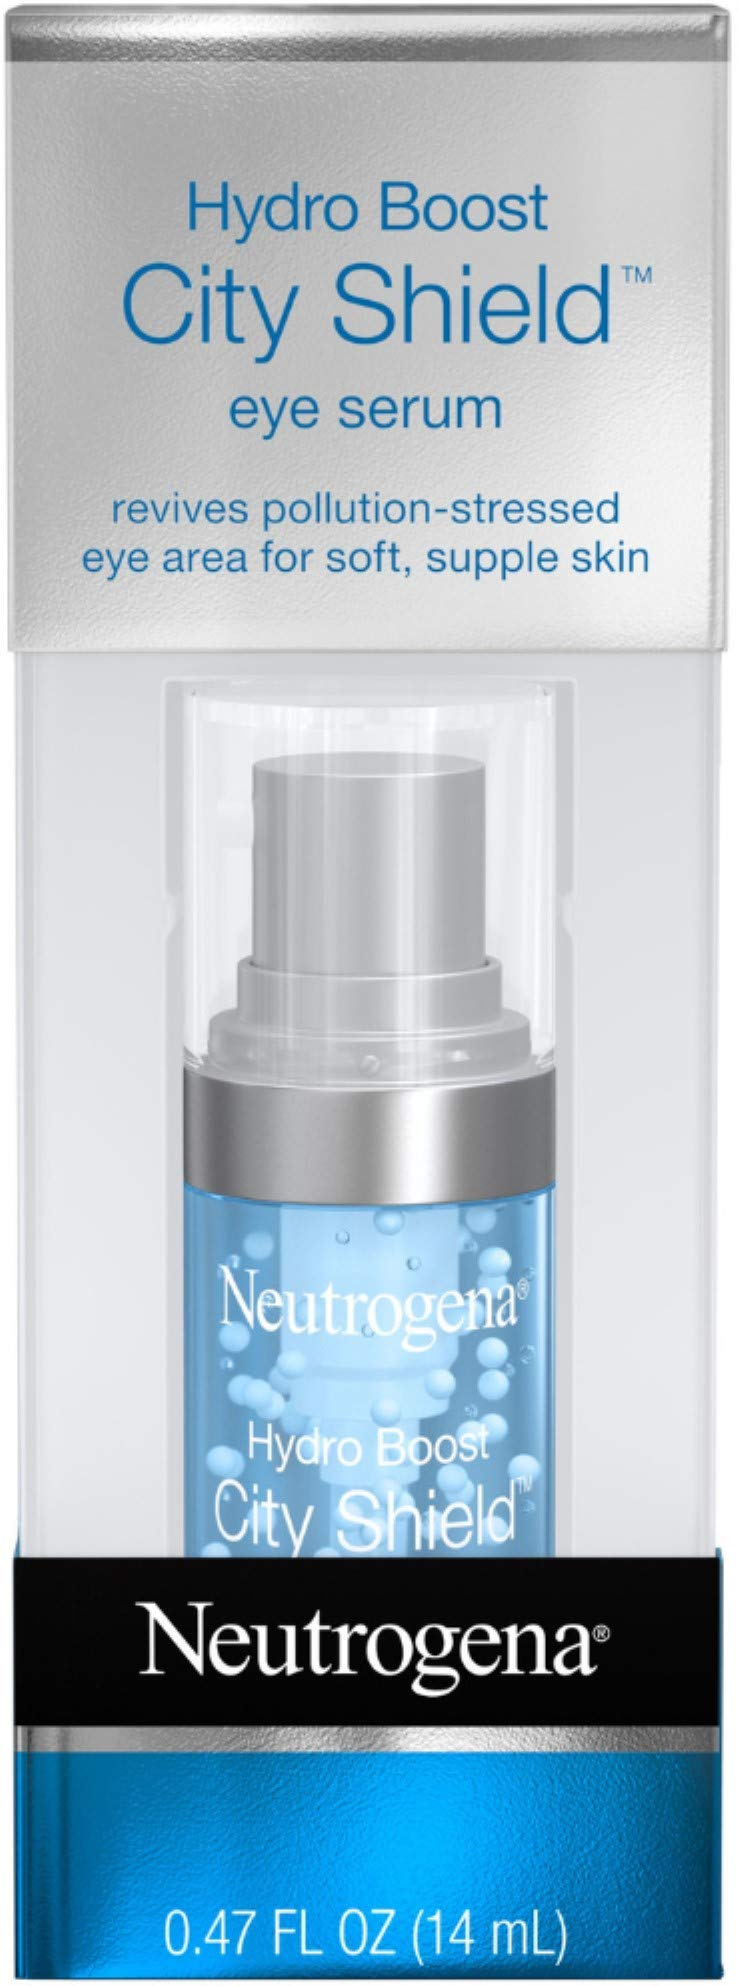 Neutrogena Hydro Boost City Shield Hydrating Eye Serum with Hyaluronic Acid, Antioxidants, and Multivitamin Capsules for Pollution Stressed Skin, Oil-Free and Non-Comedogenic.47 fl. oz by Neutrogena